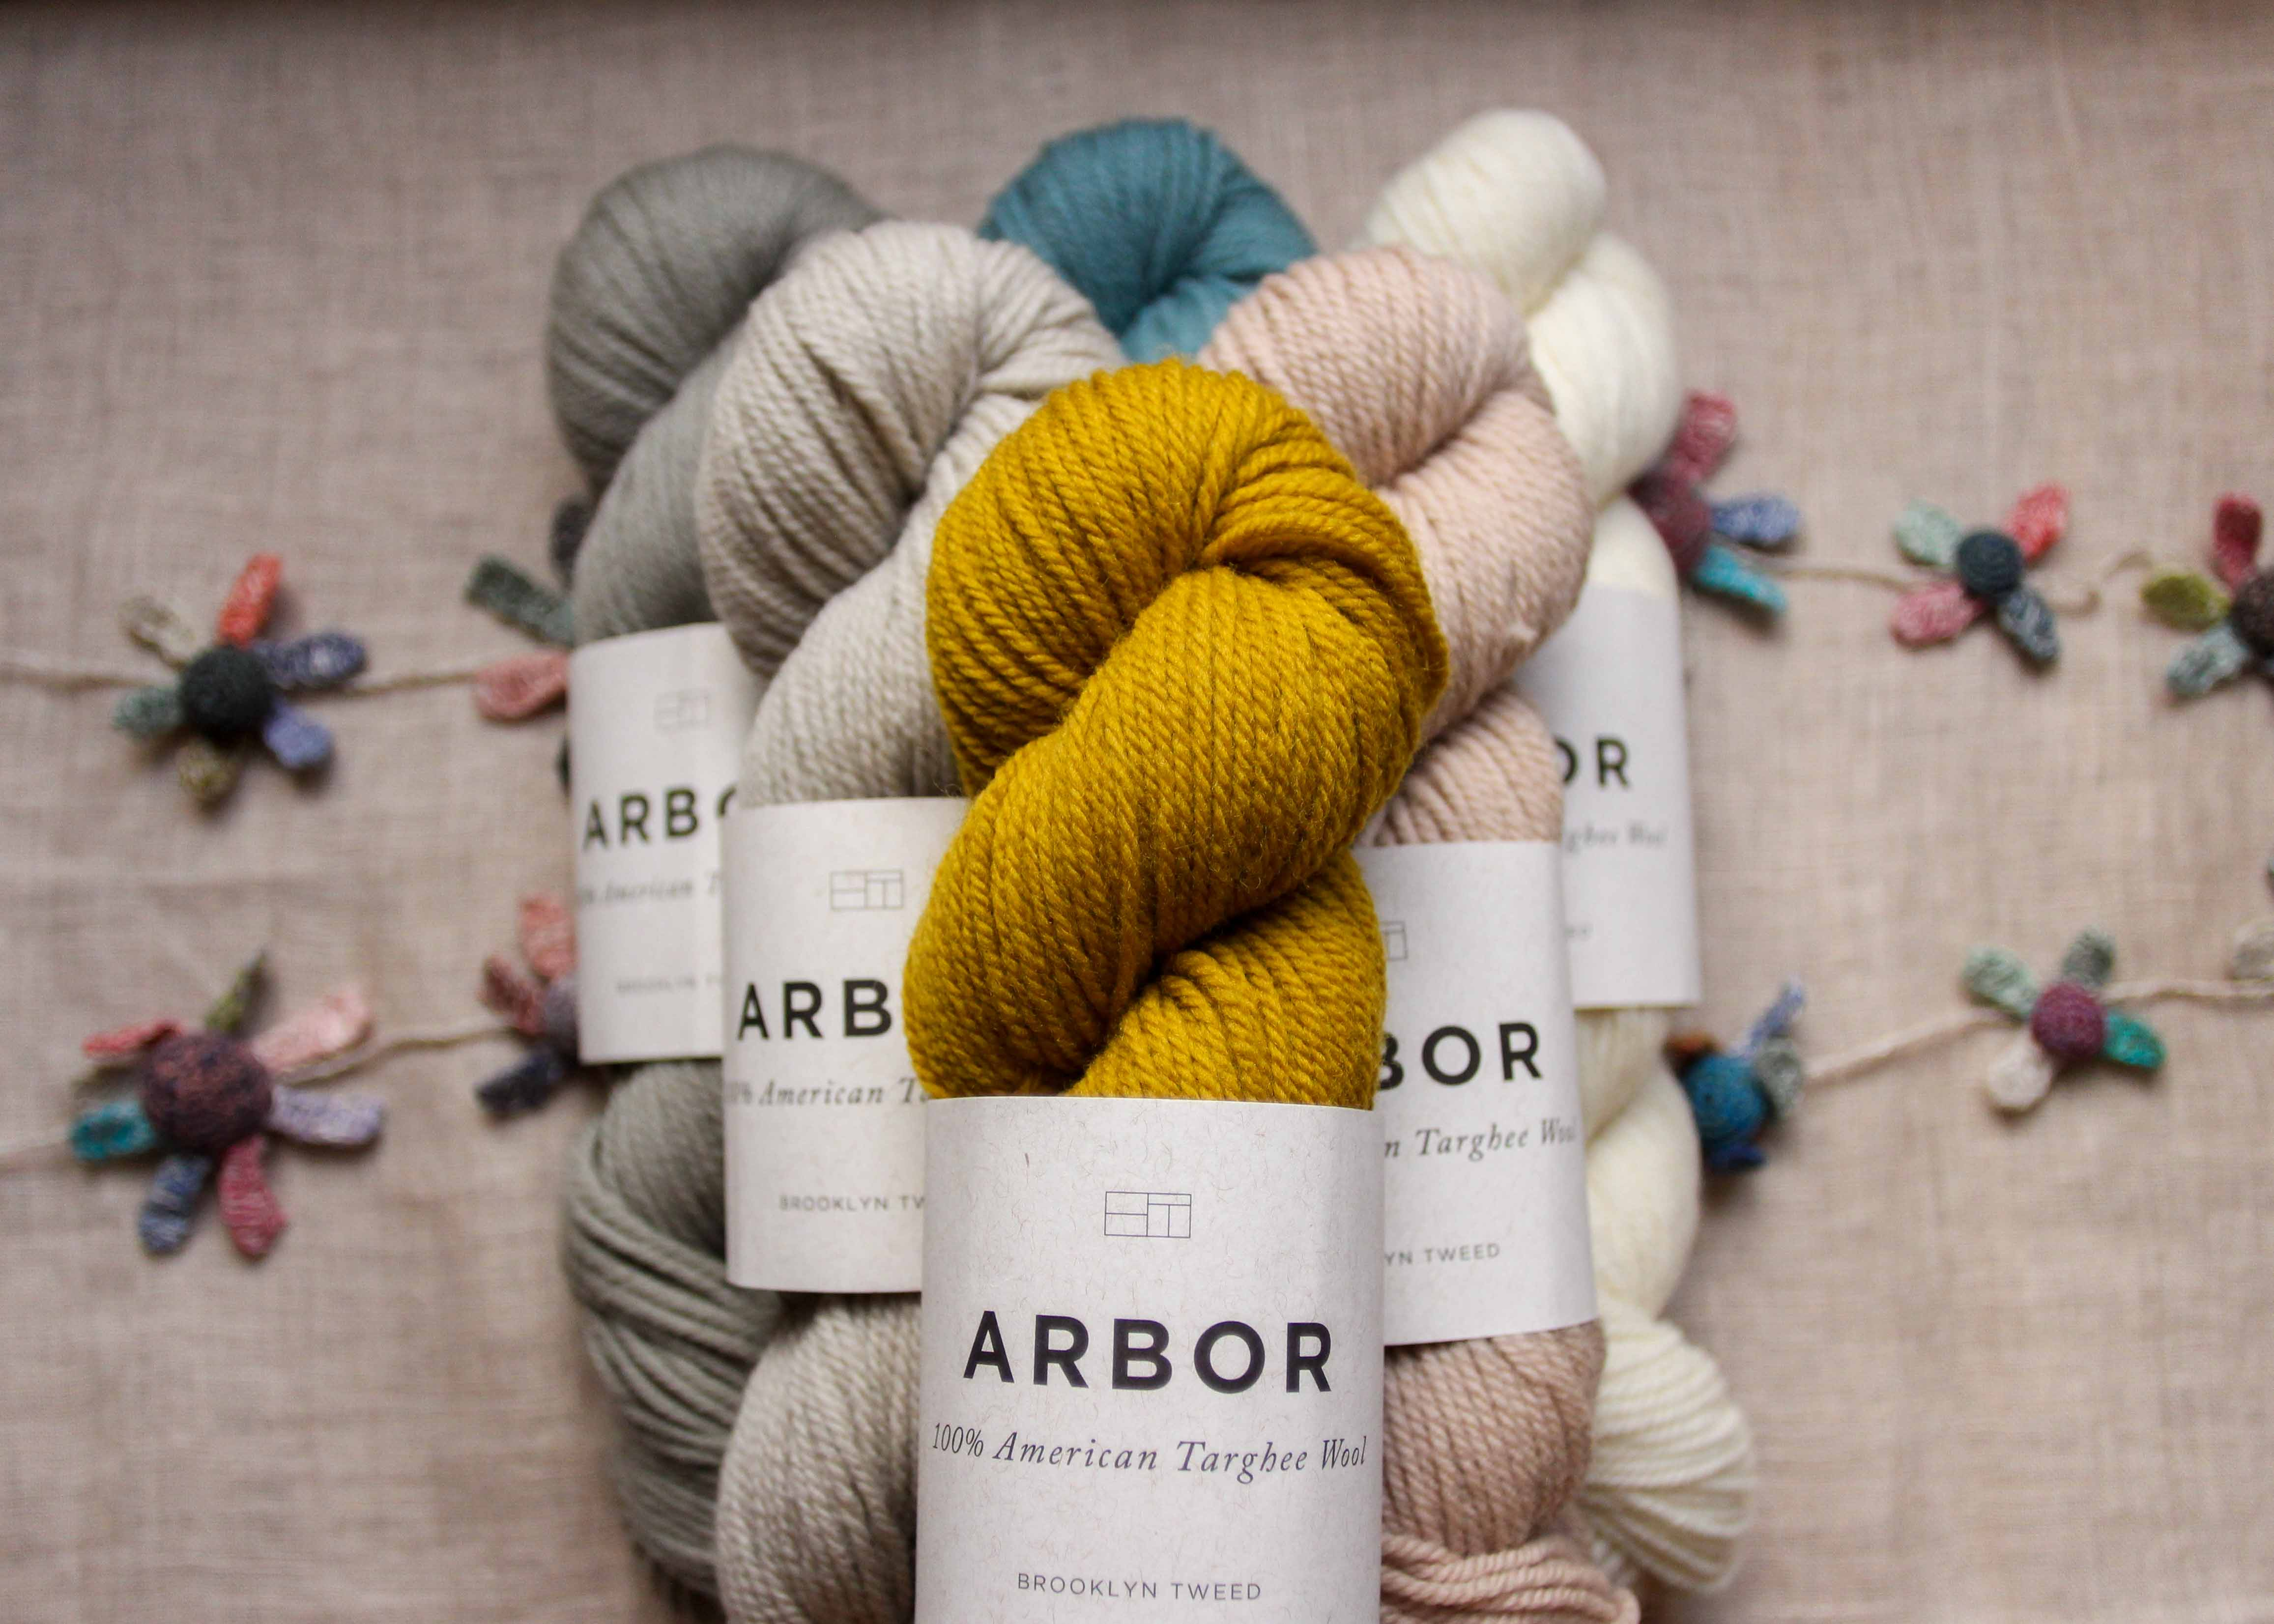 Introducing Arbor by Brooklyn Tweed